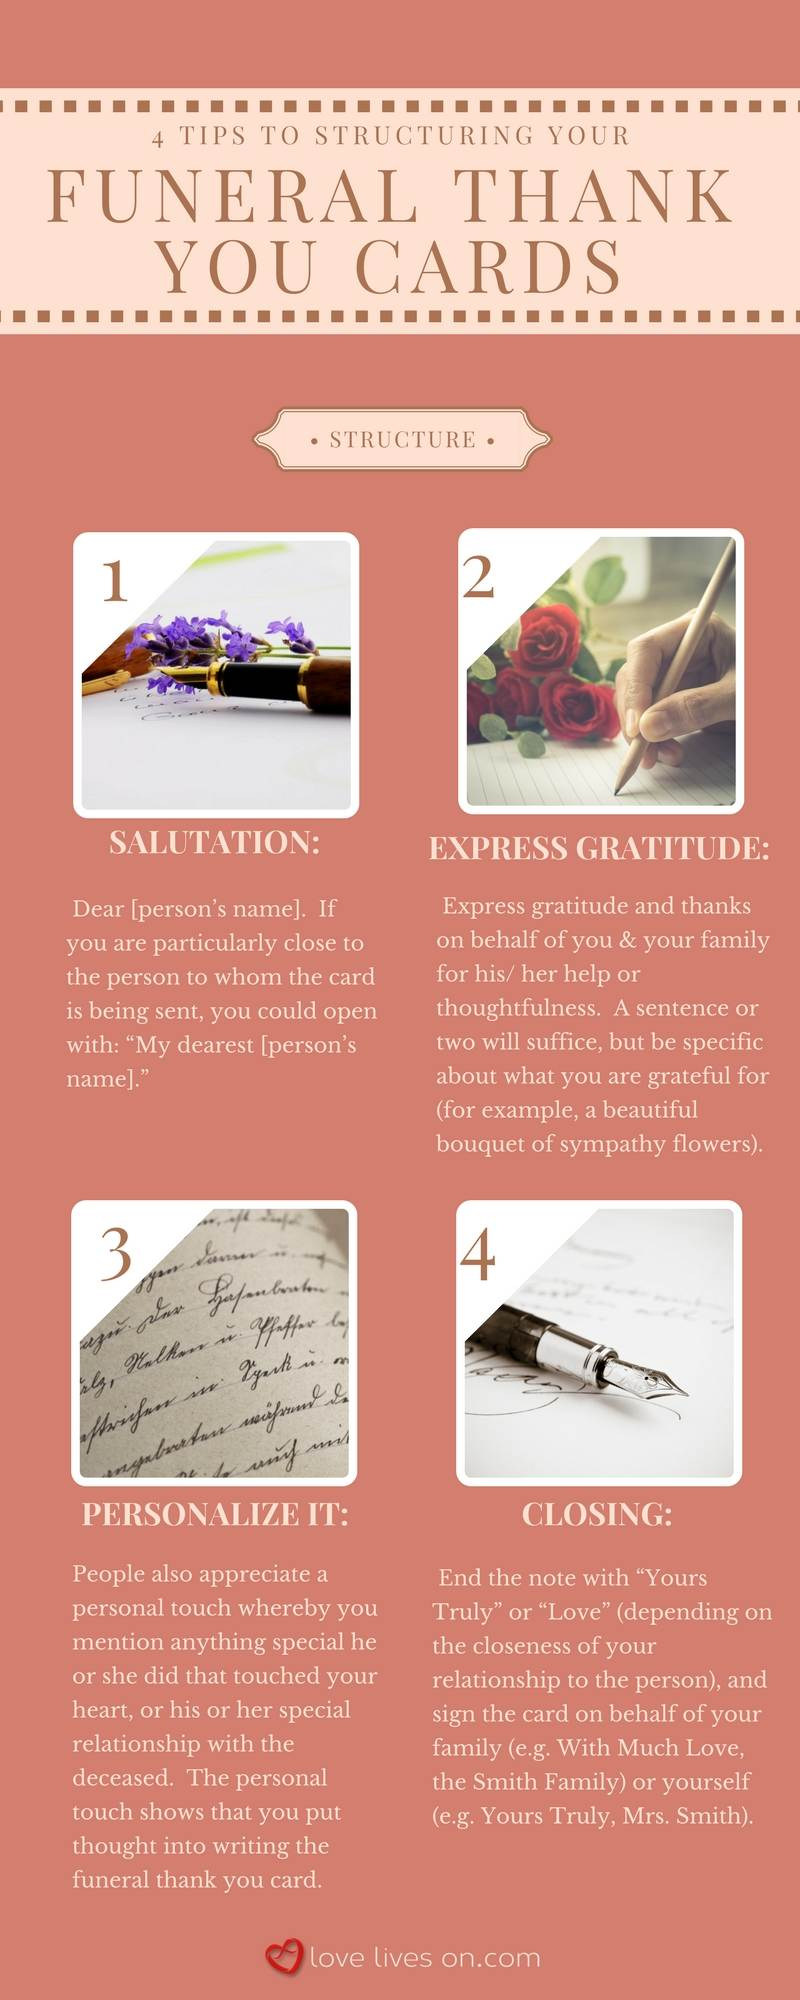 Infographic: Funeral Thank You Notes